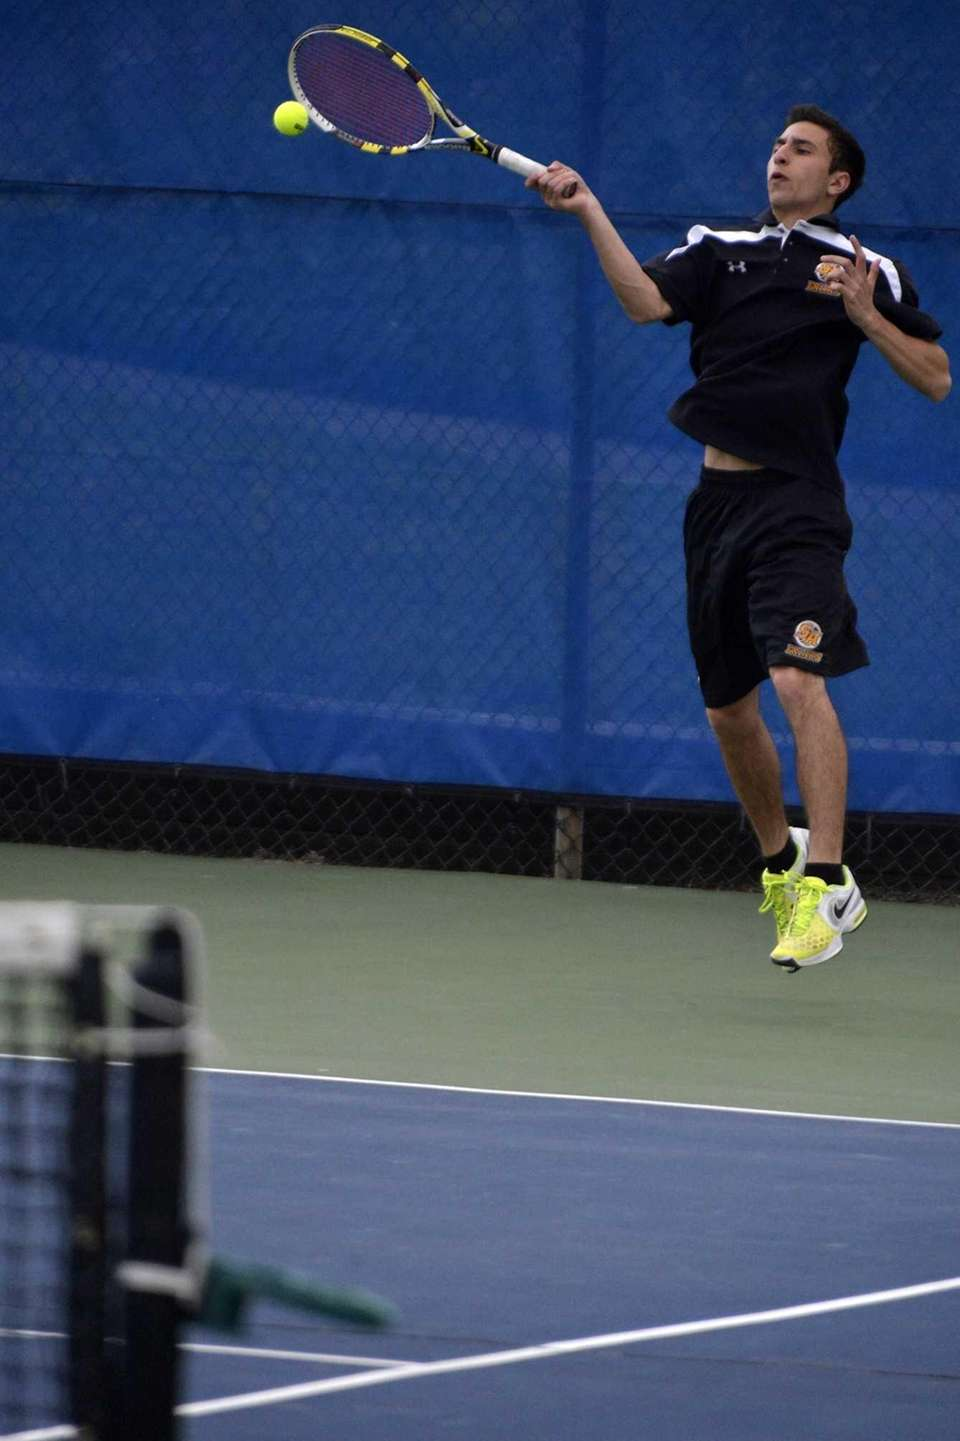 John D'Alessandro of St. Anthony returns a forehand